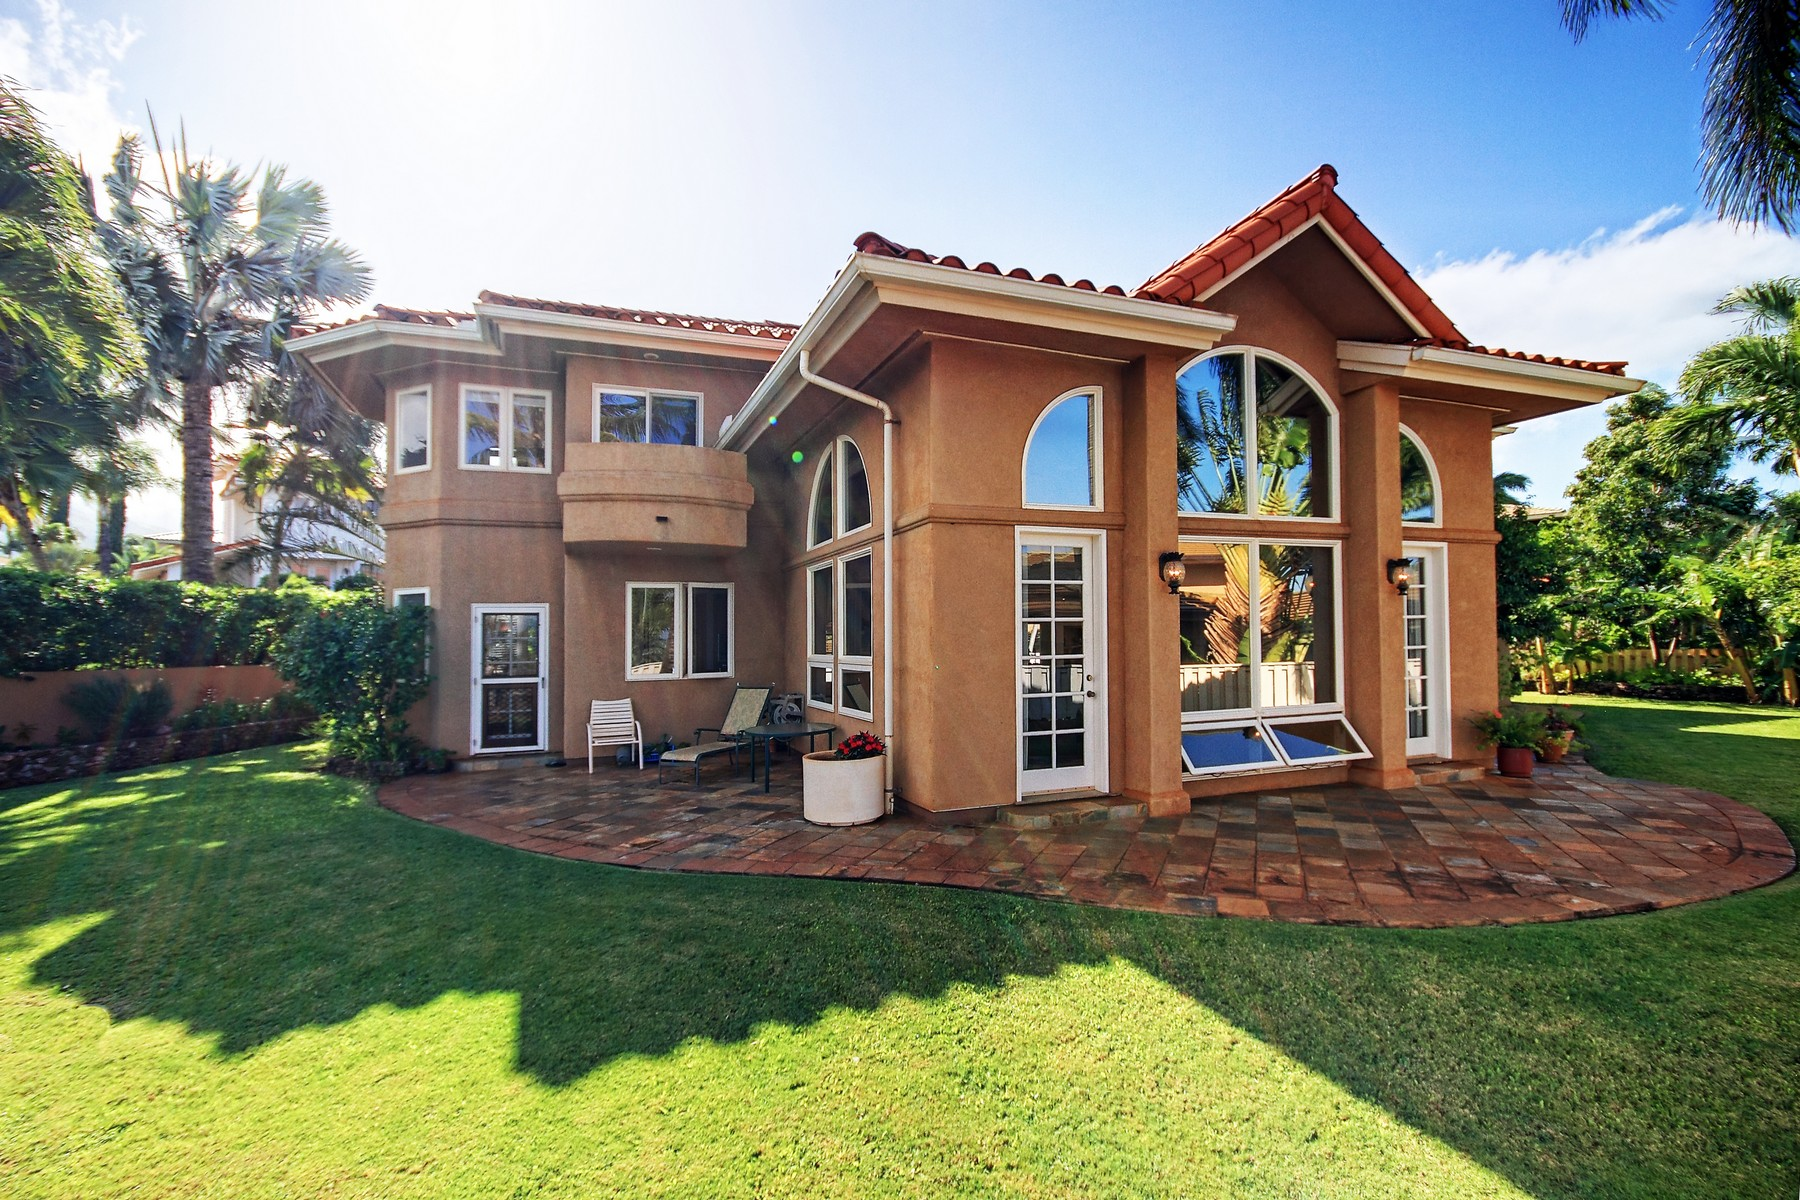 Single Family Home for Sale at Where Your Home Reflects Your Style 60 S. Piki Place Kaanapali, Hawaii 96761 United States